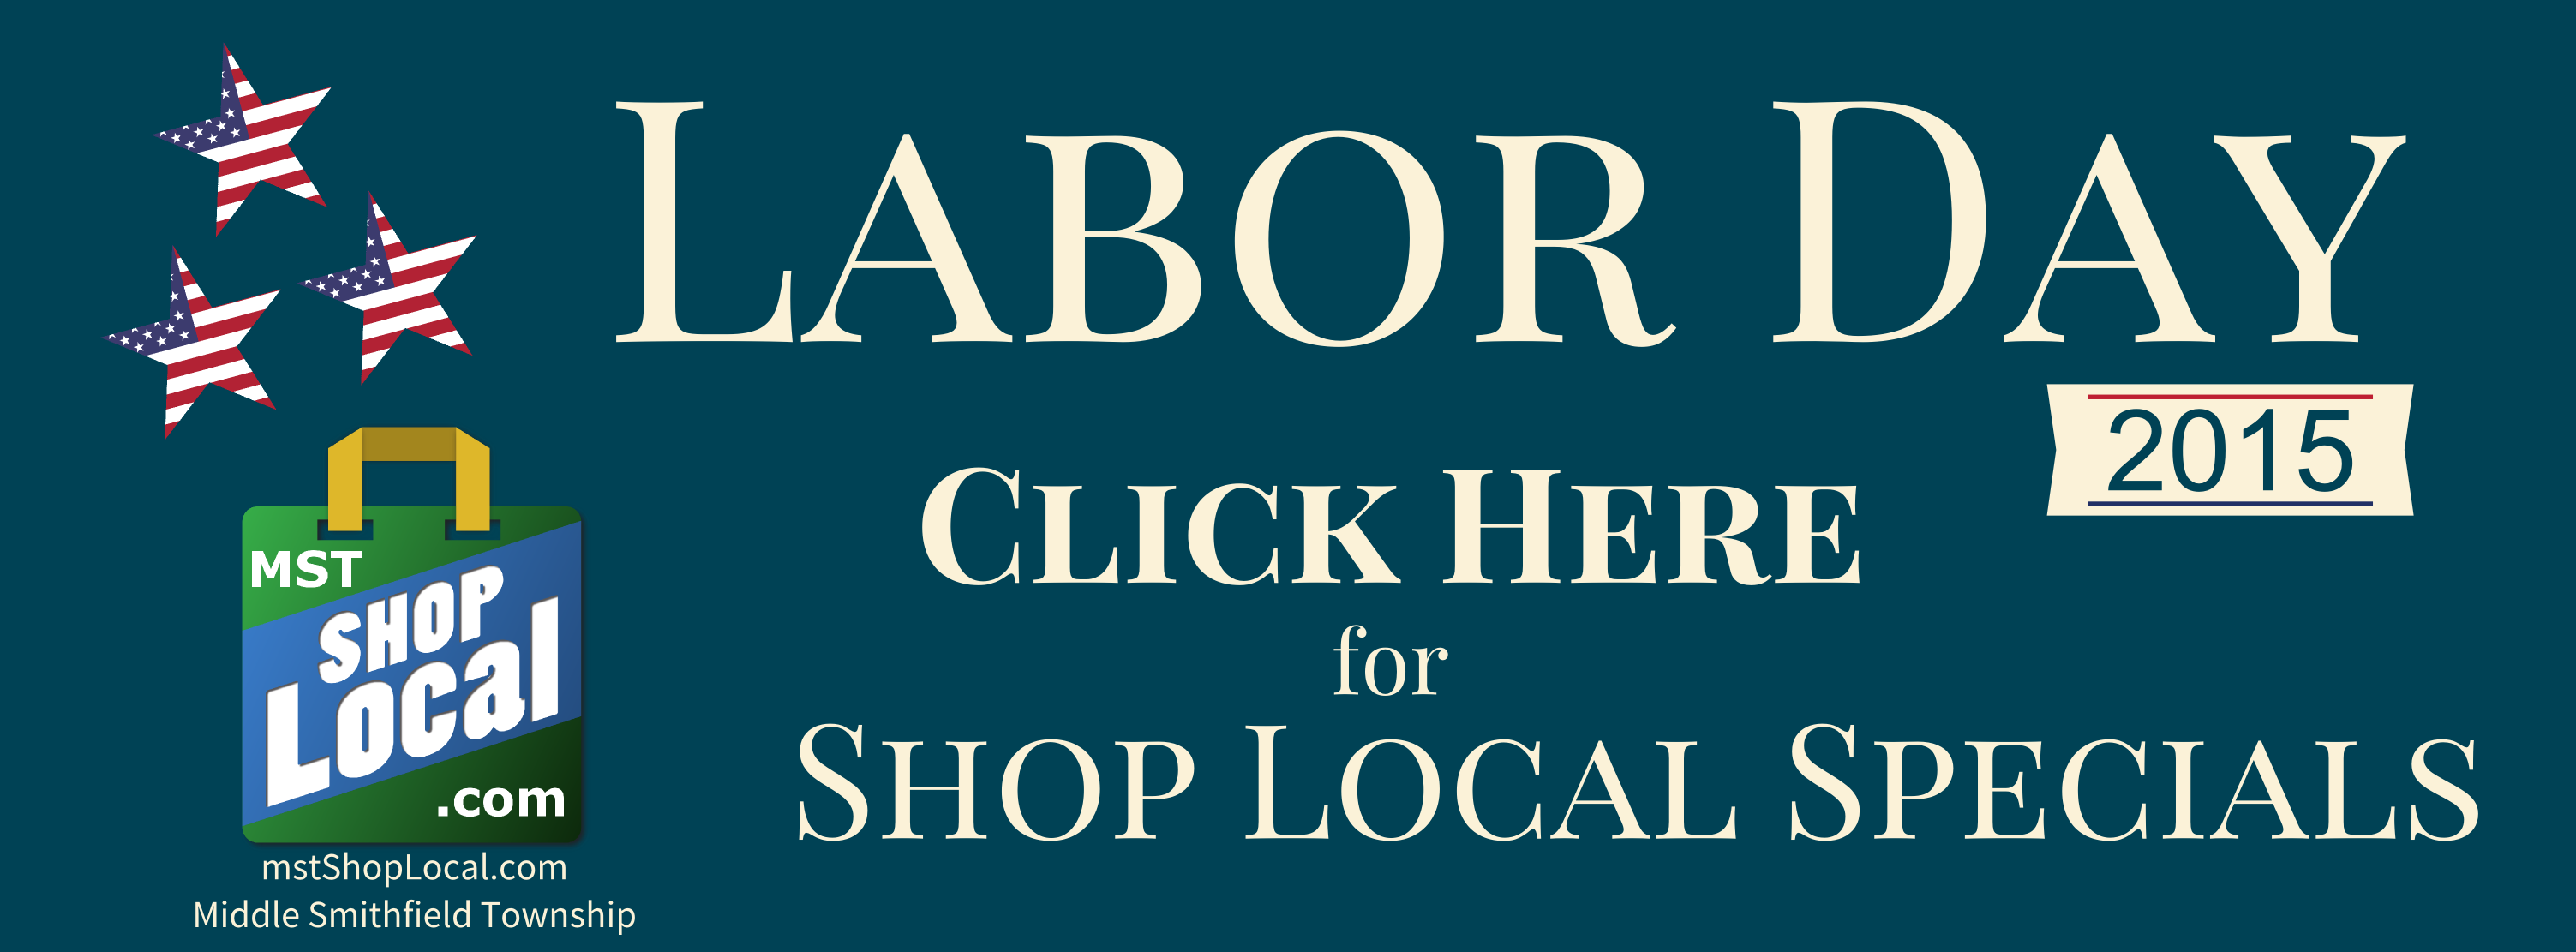 Announcing the first mst shop local labor day holiday specials!